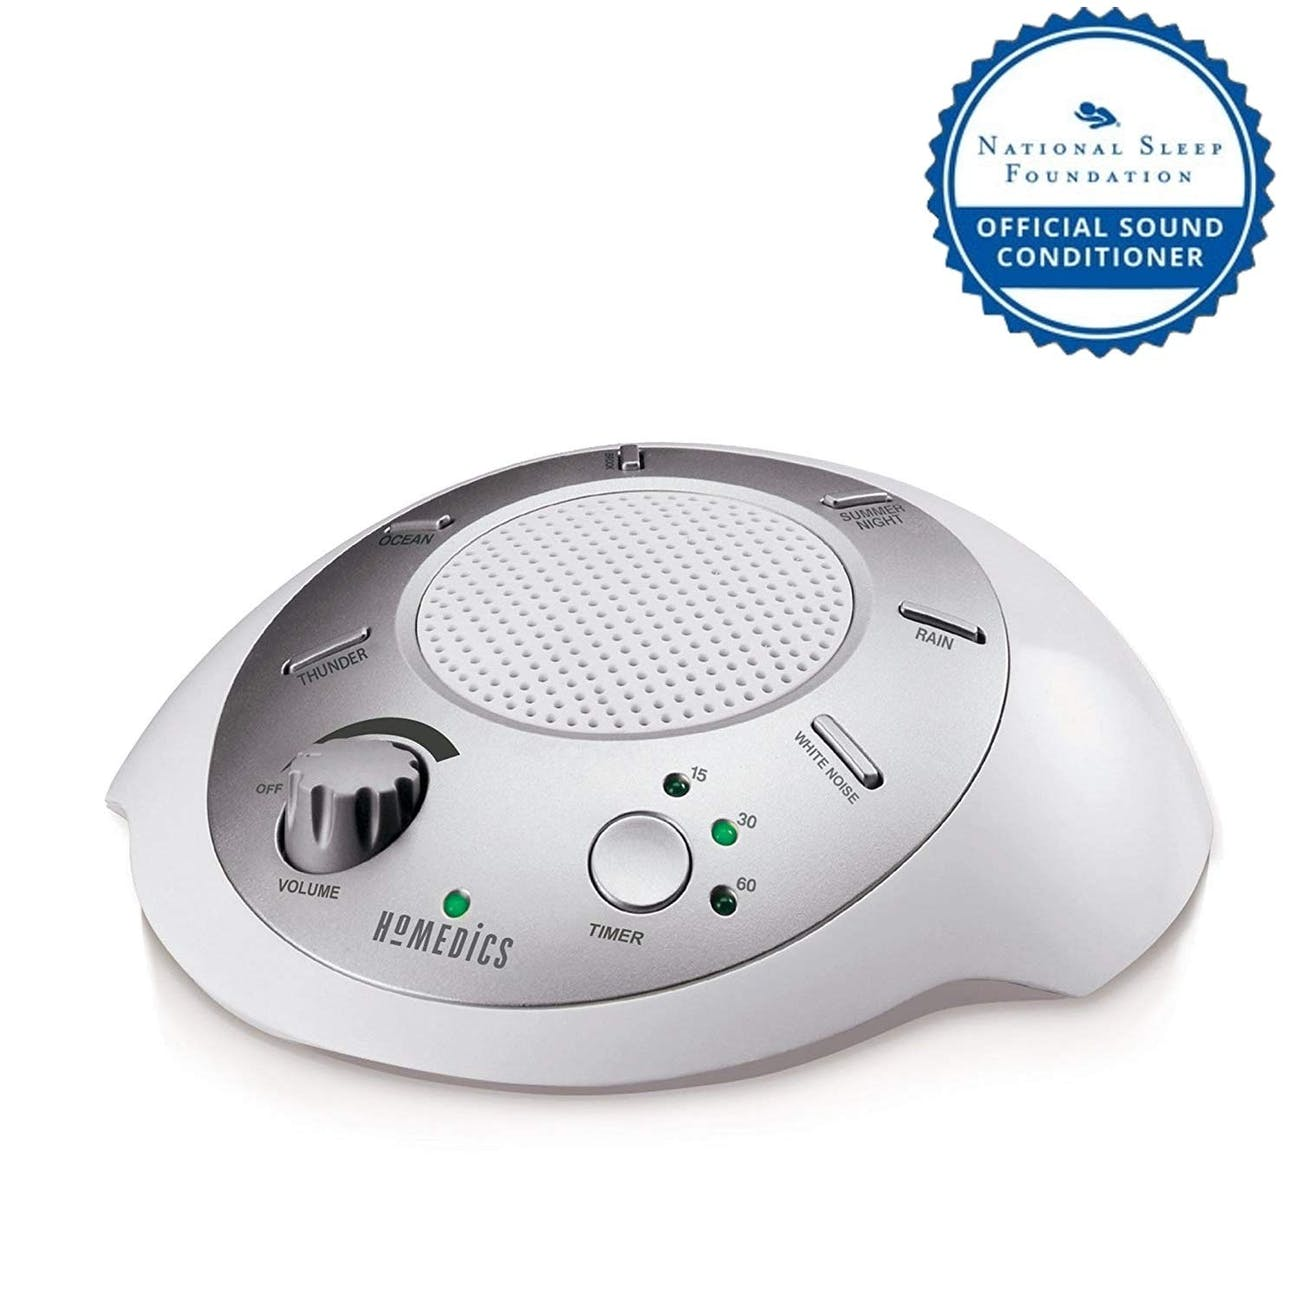 The Best Inexpensive White Noise Sound Machines on Amazon | Inverse